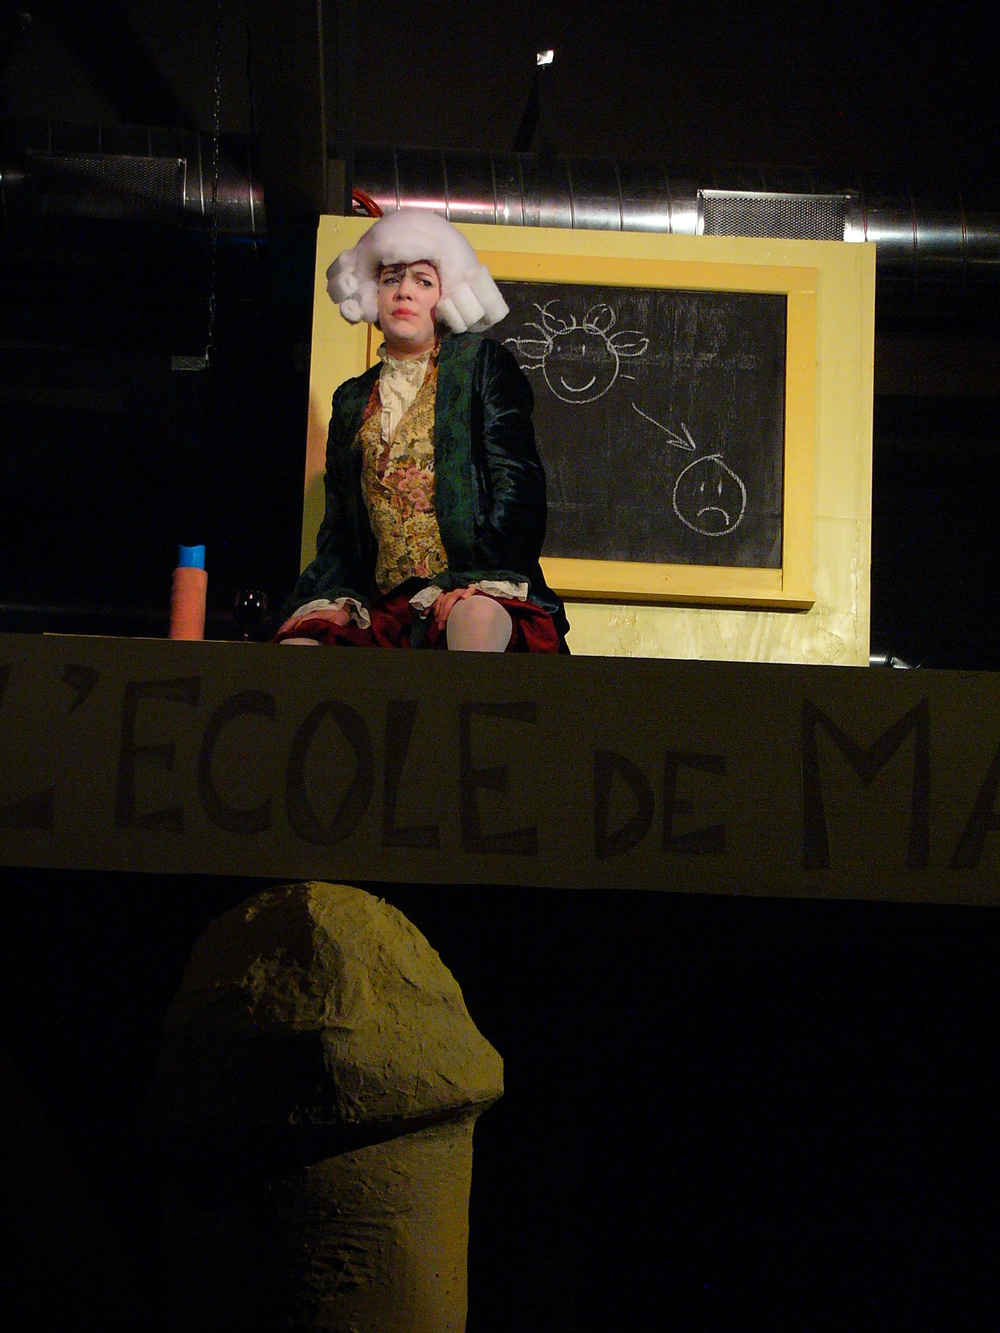 L'école de Maldetête (The School of Headaches) - 2009